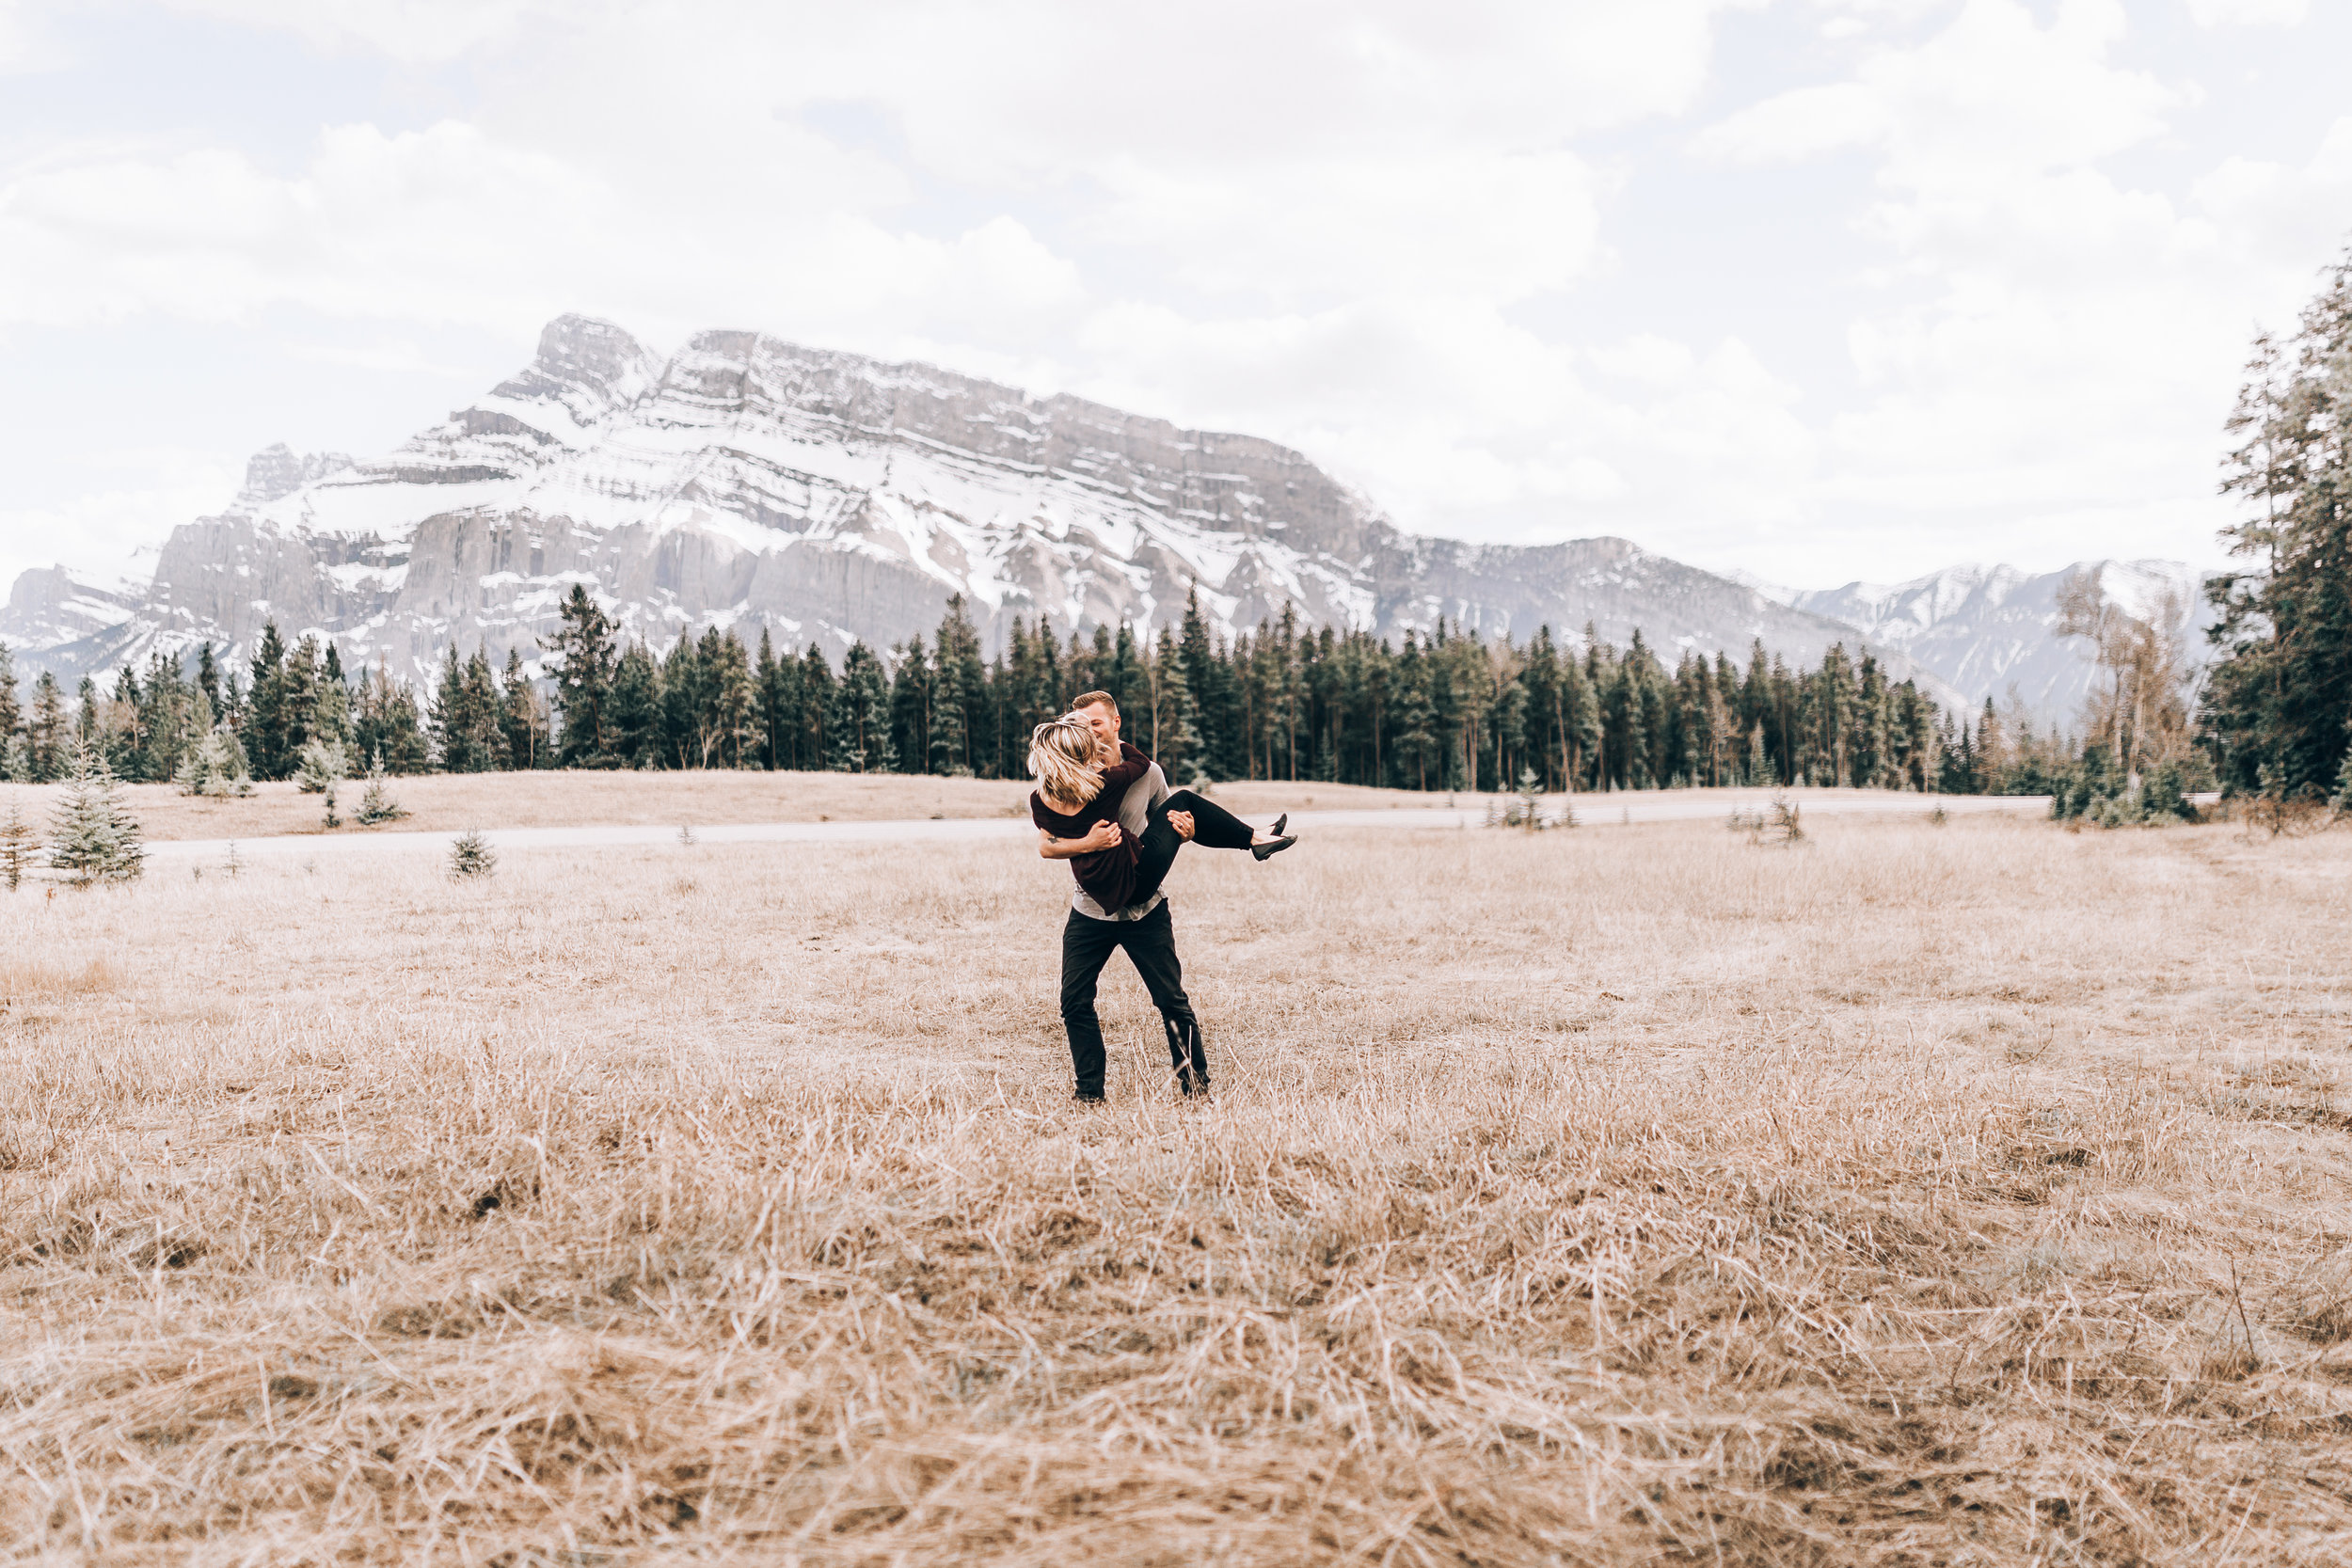 simpleperfectionsphotography.cullen+chelsey-60.jpg